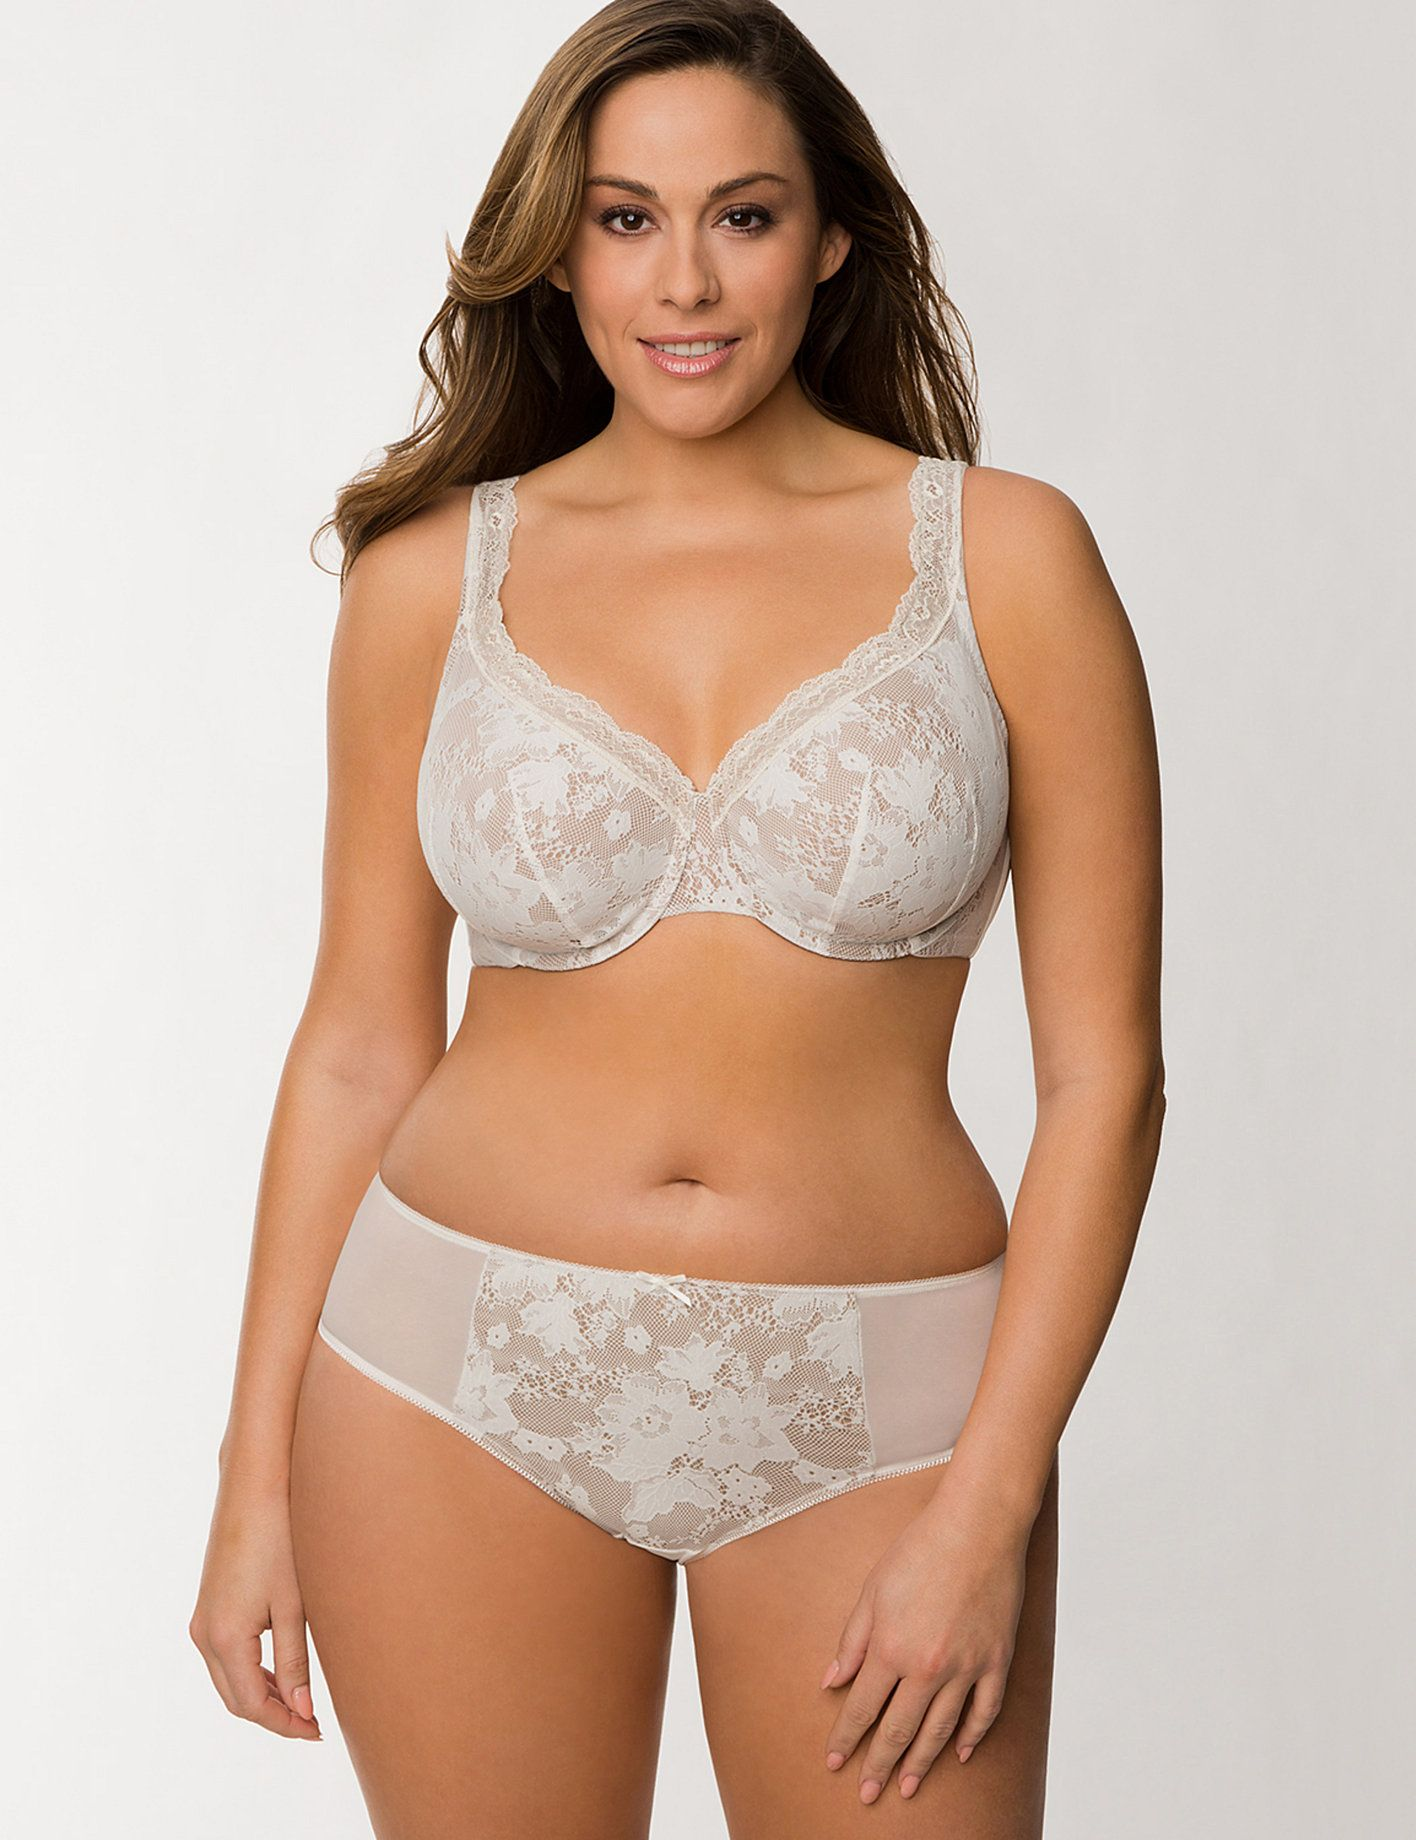 2341ea4a78 Jennifer Maitland. | Plus Size PhotoShoot | Fashion, Designer bra, Lace